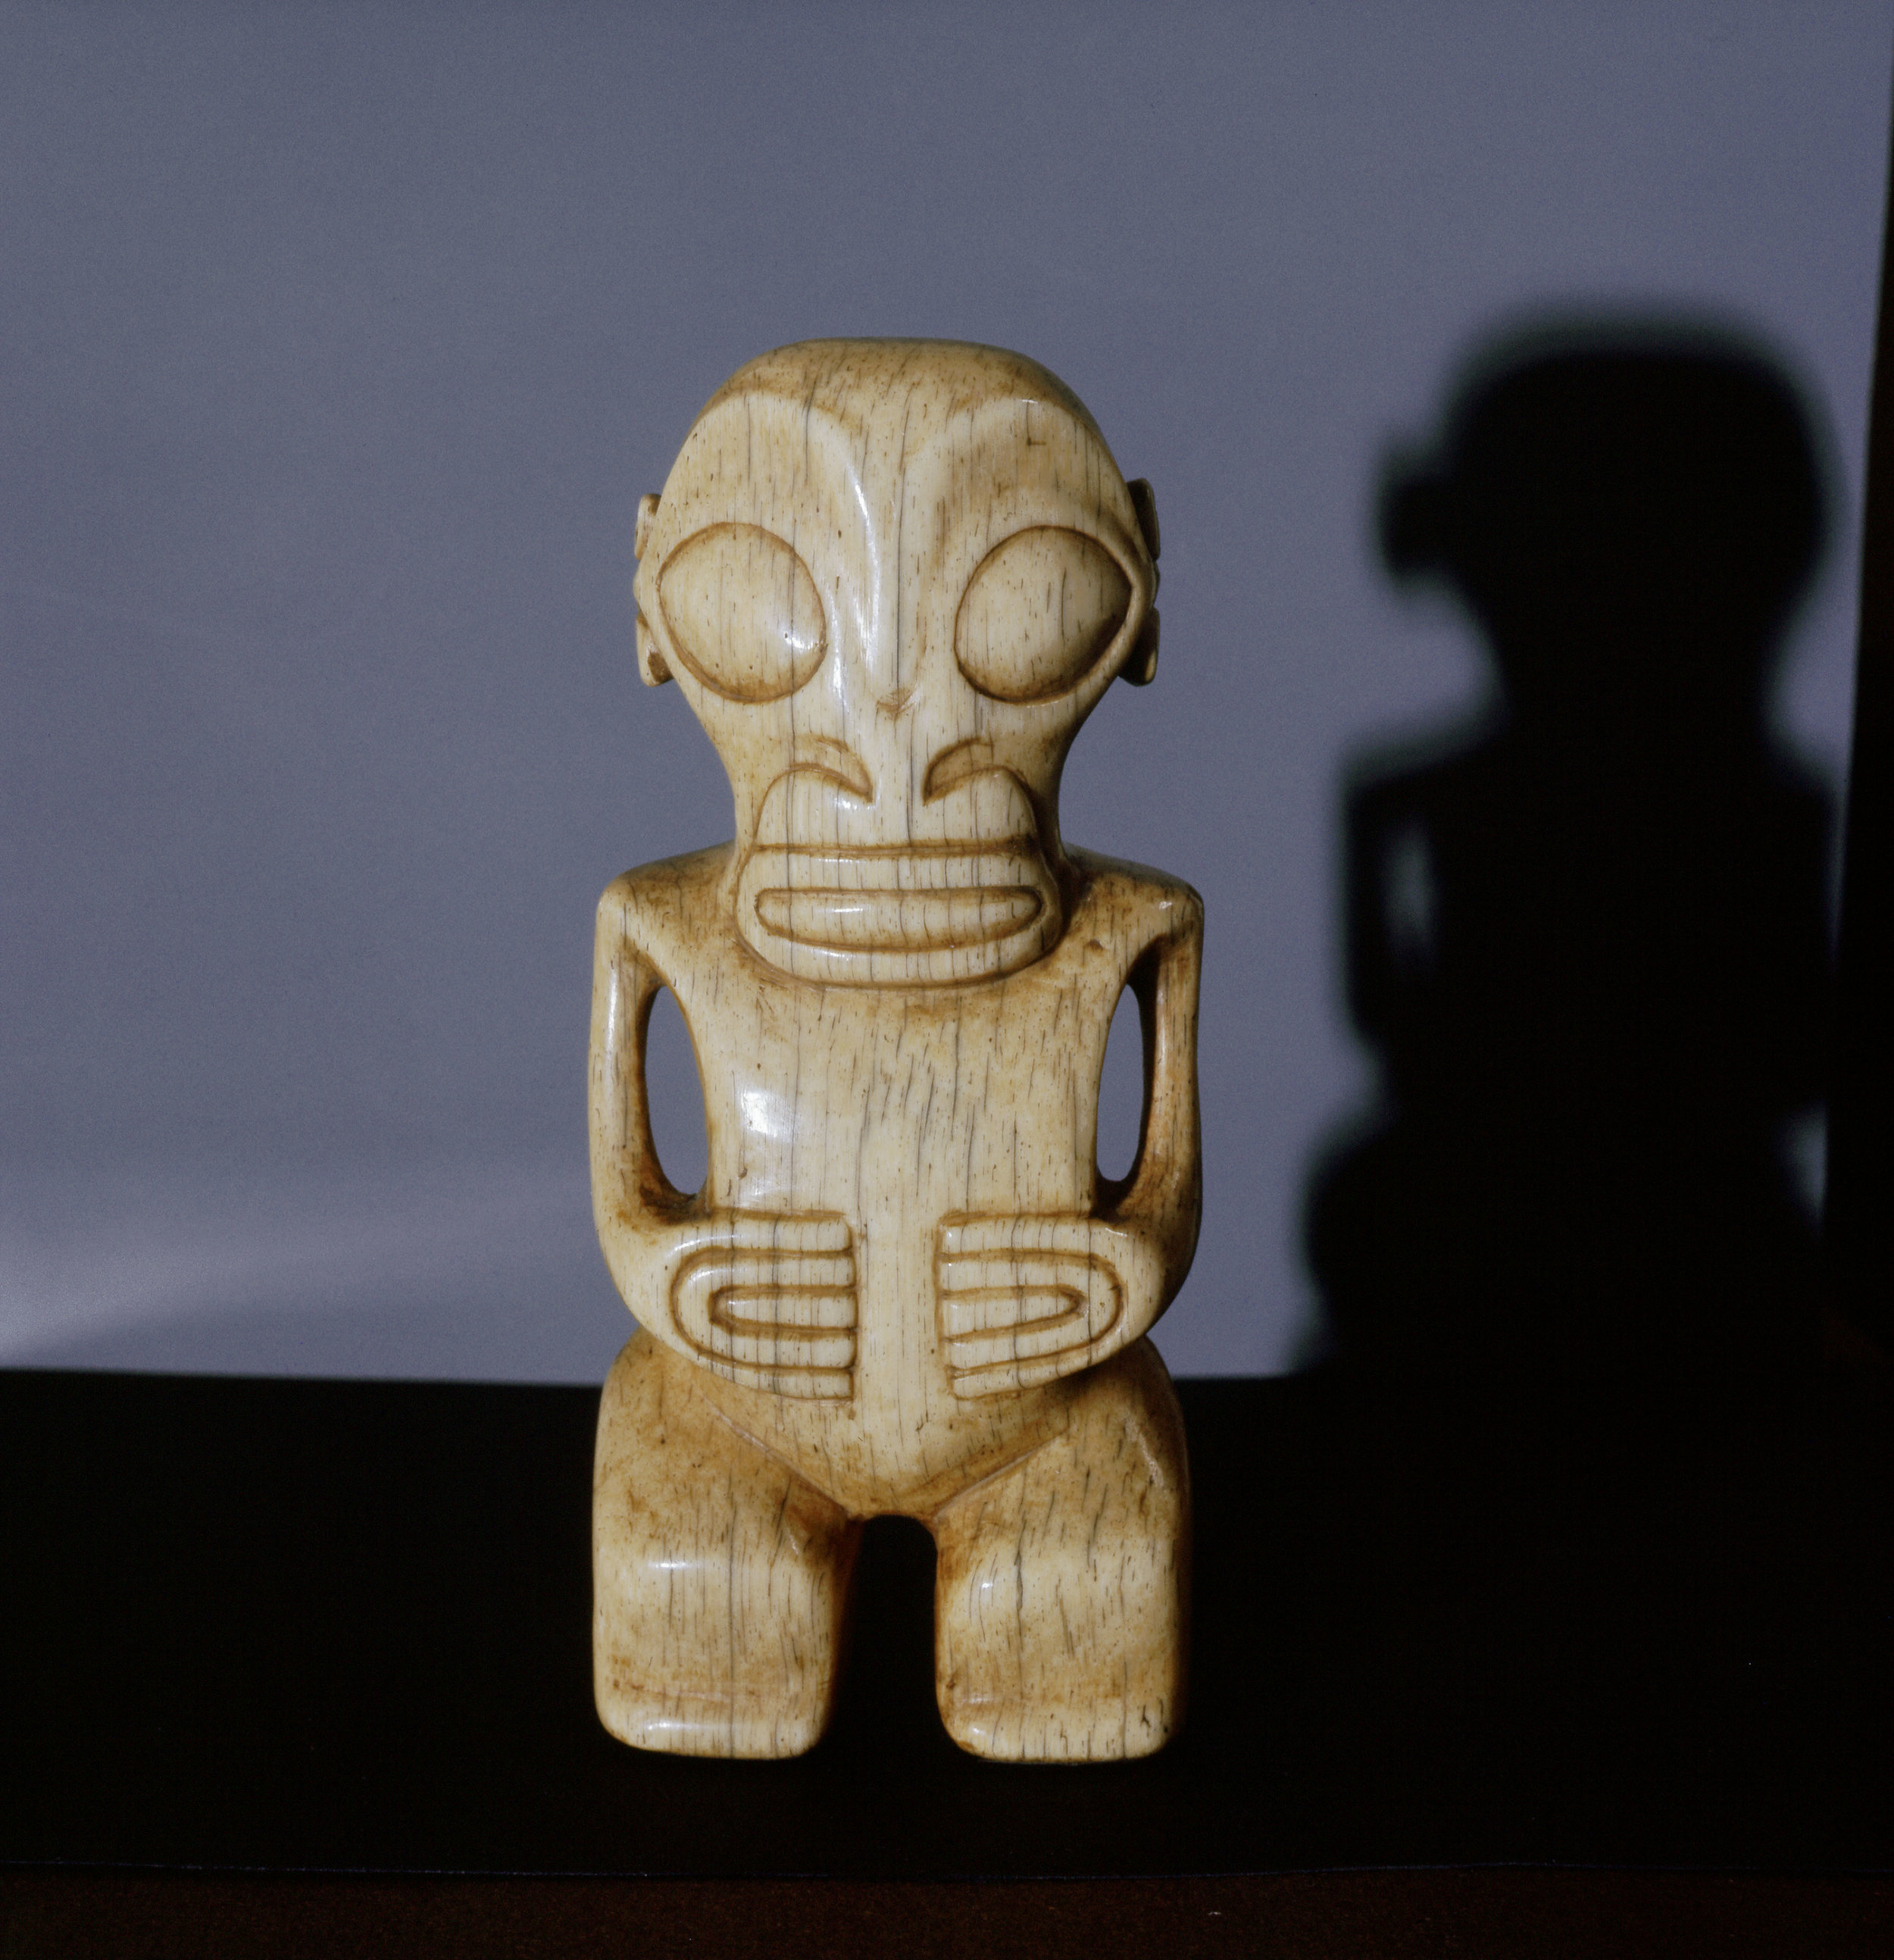 Small ivory tiki figure, probably a pendant. Country of Origin: Marquesas Islands. Culture: Oceanic. Material Size: Sea mammal ivory. Credit Line: Werner Forman Archive / Private Collection.